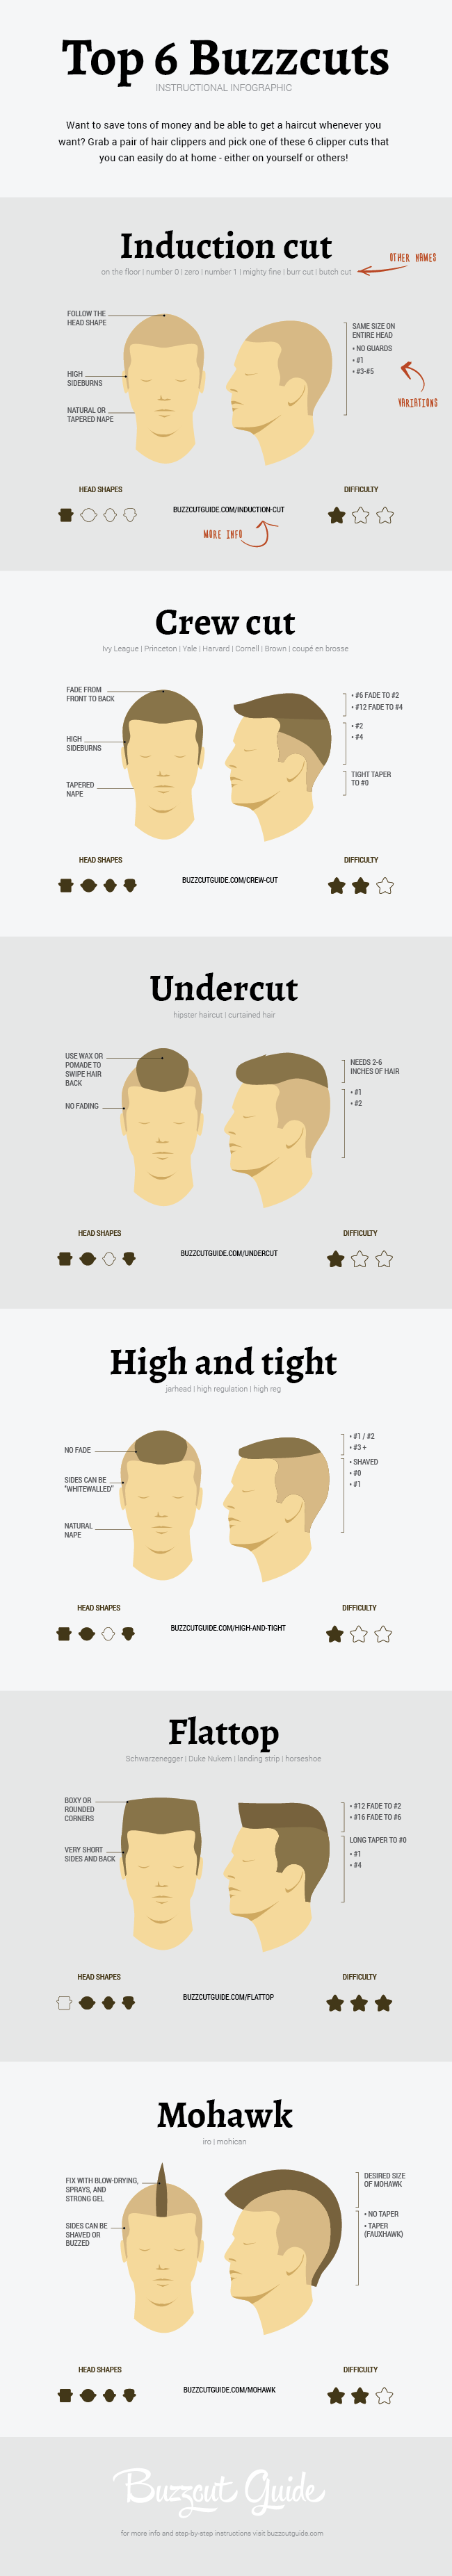 top-buzzcuts-infographic